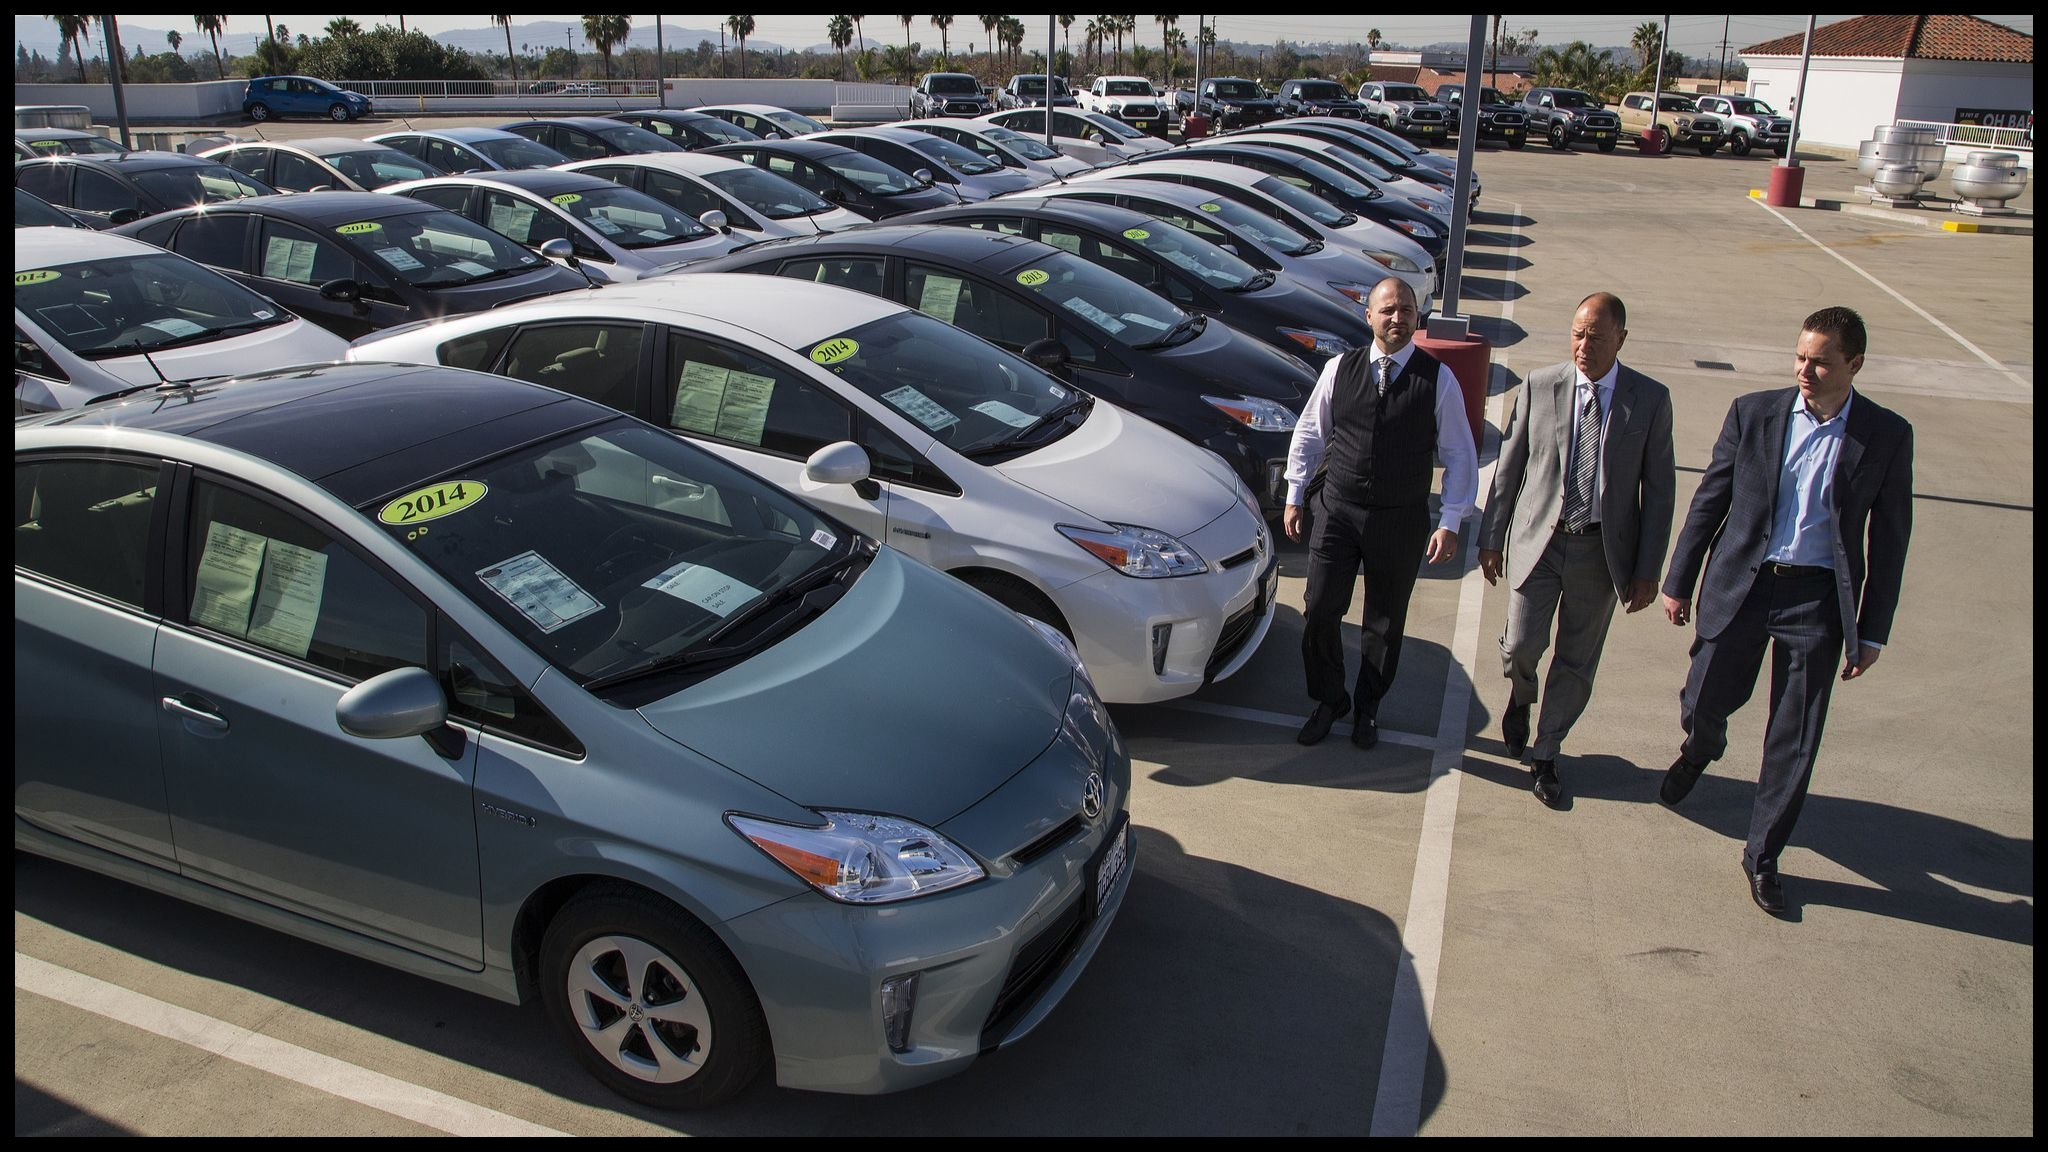 Toyota issues a safety recall for 2 4 million Prius Auris hybrids to fix a defect in their electronics Los Angeles Times